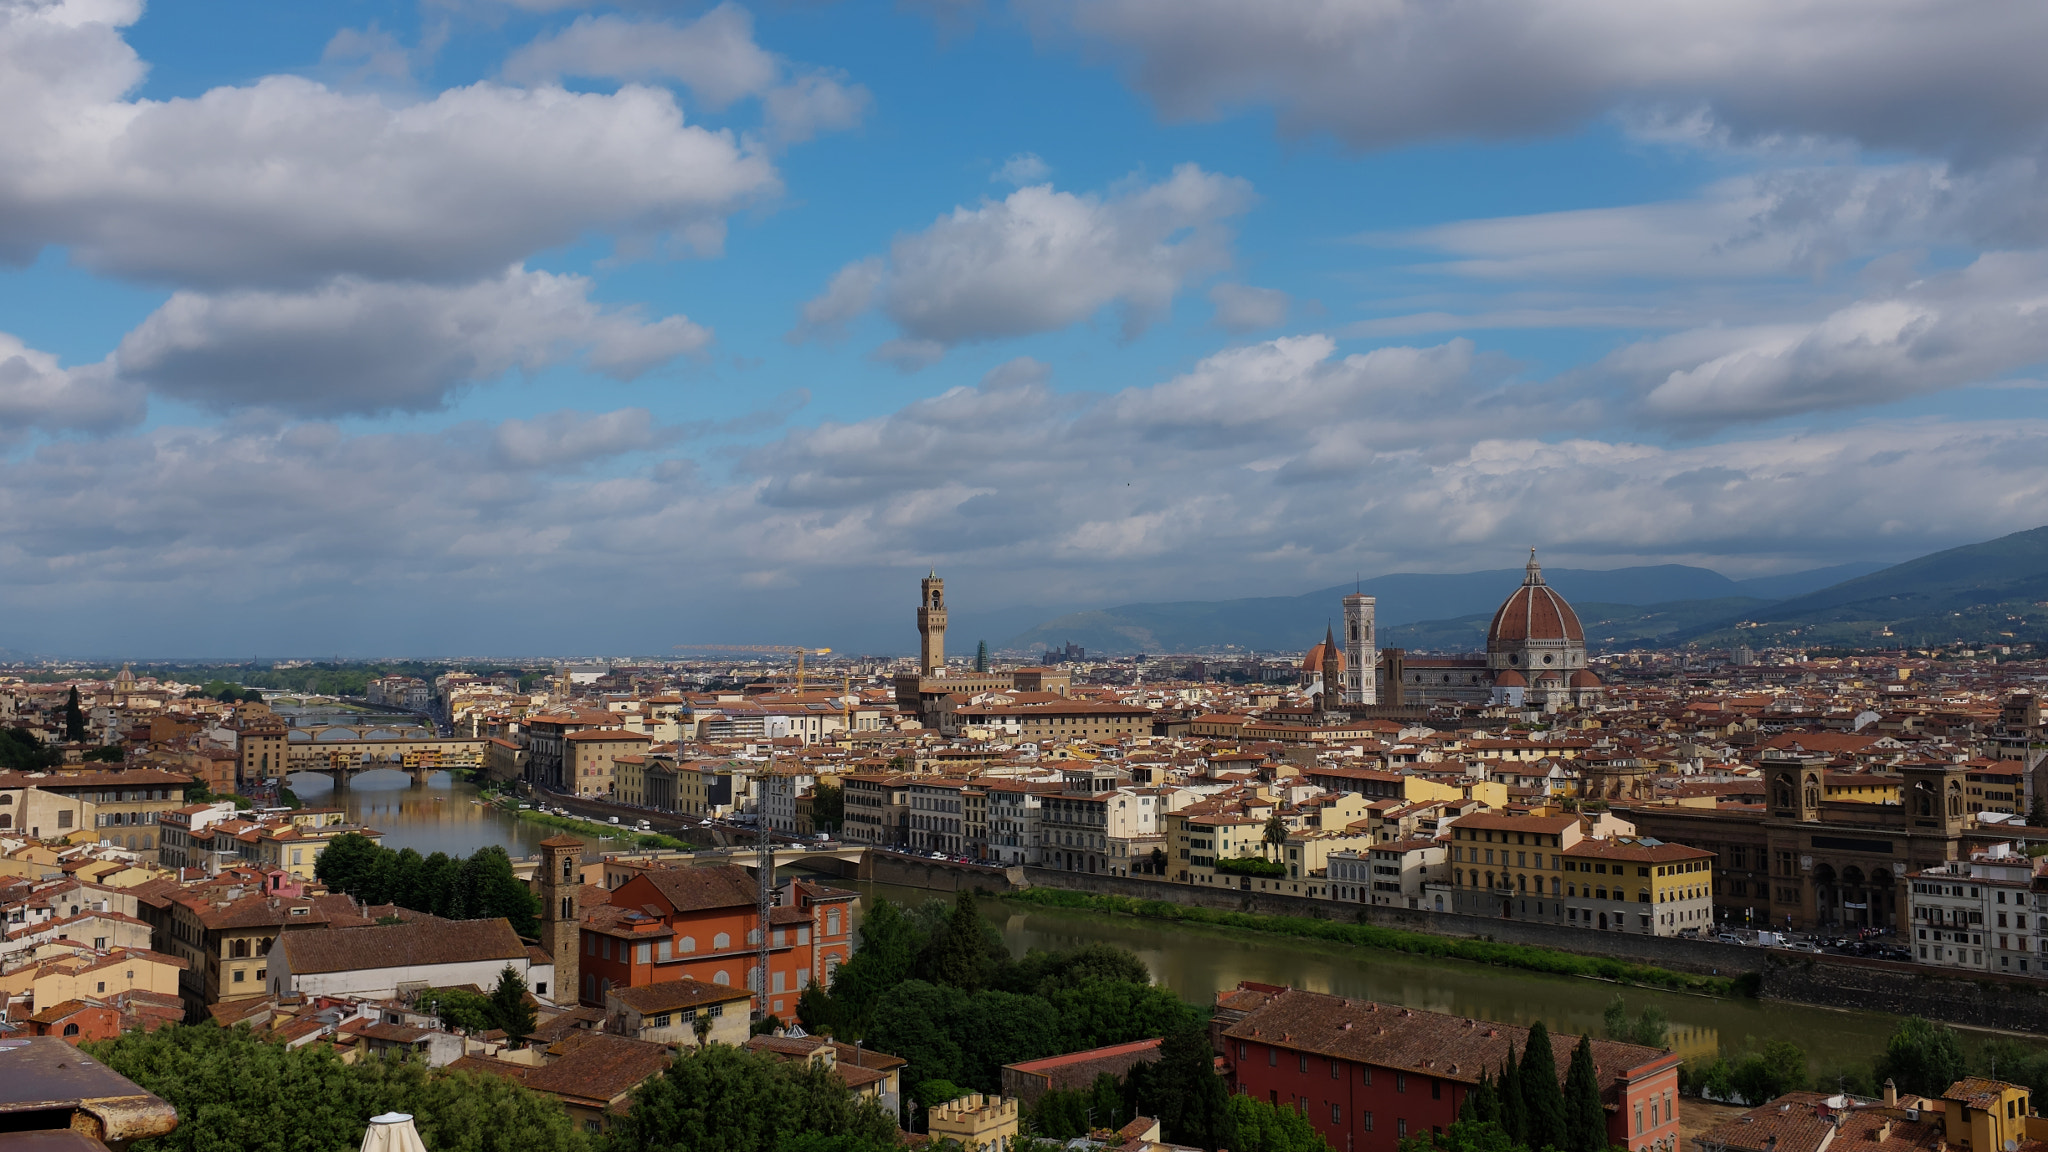 Panoramic View of Firenze from Piazzale Michelangelo